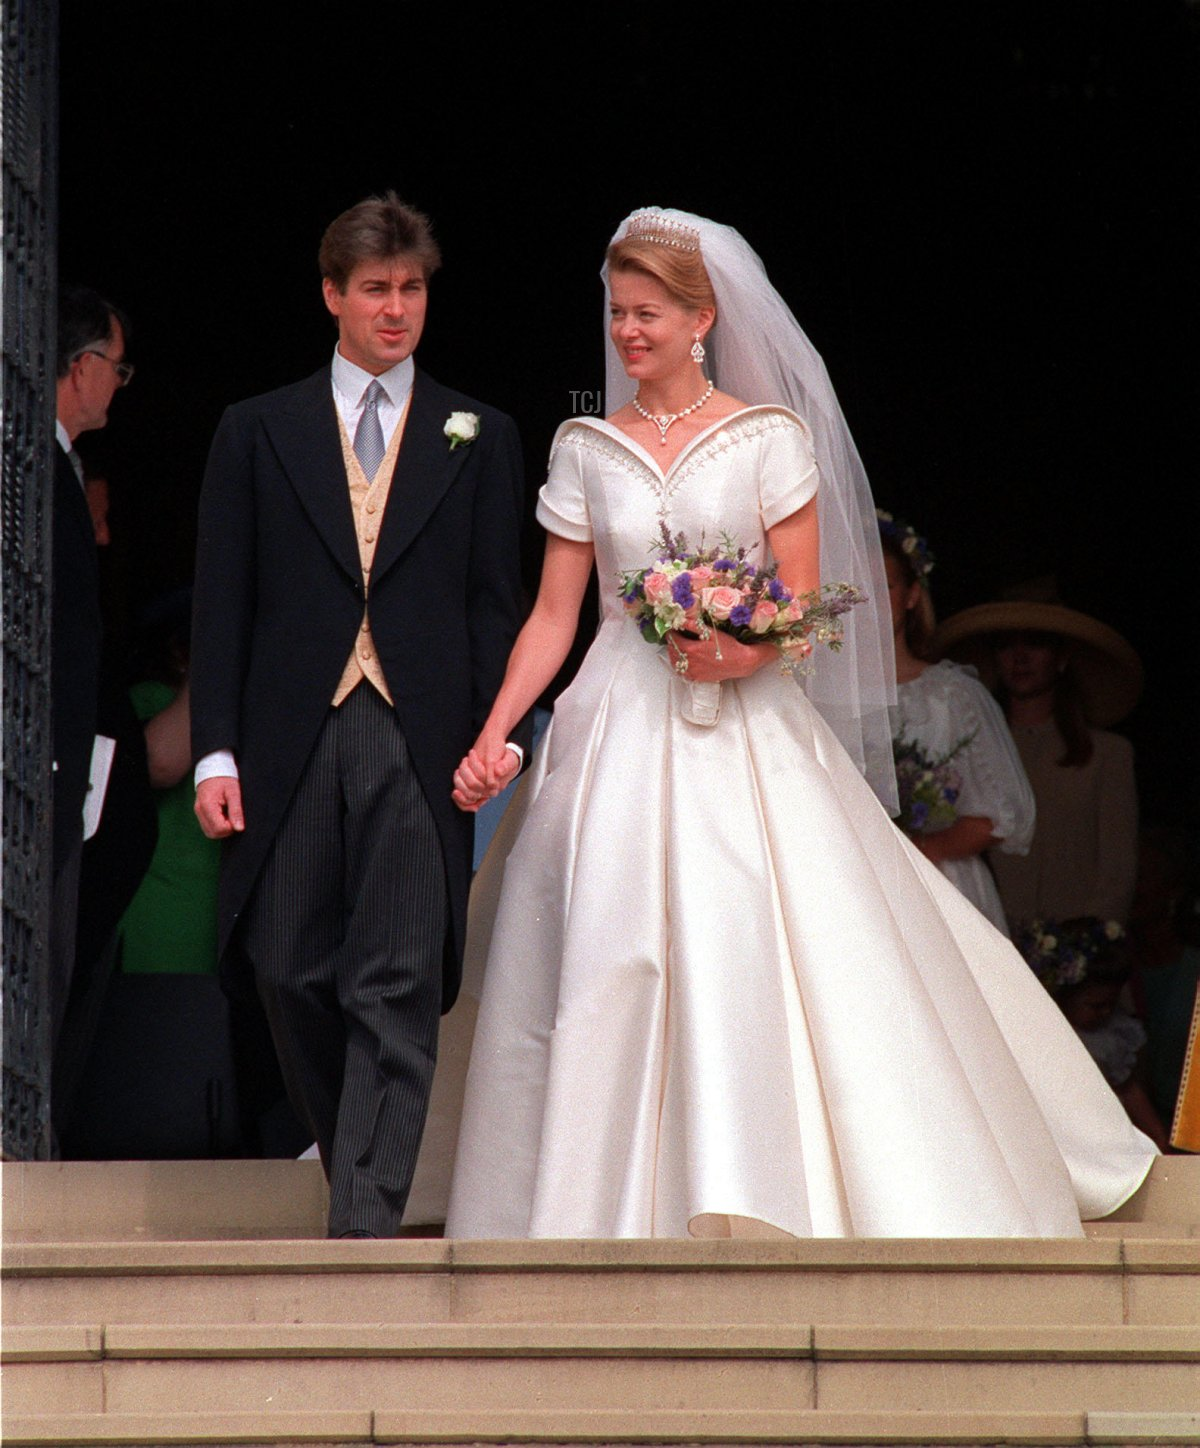 Timothy Taylor and Lady Helen Windsor on their wedding day, July 1992